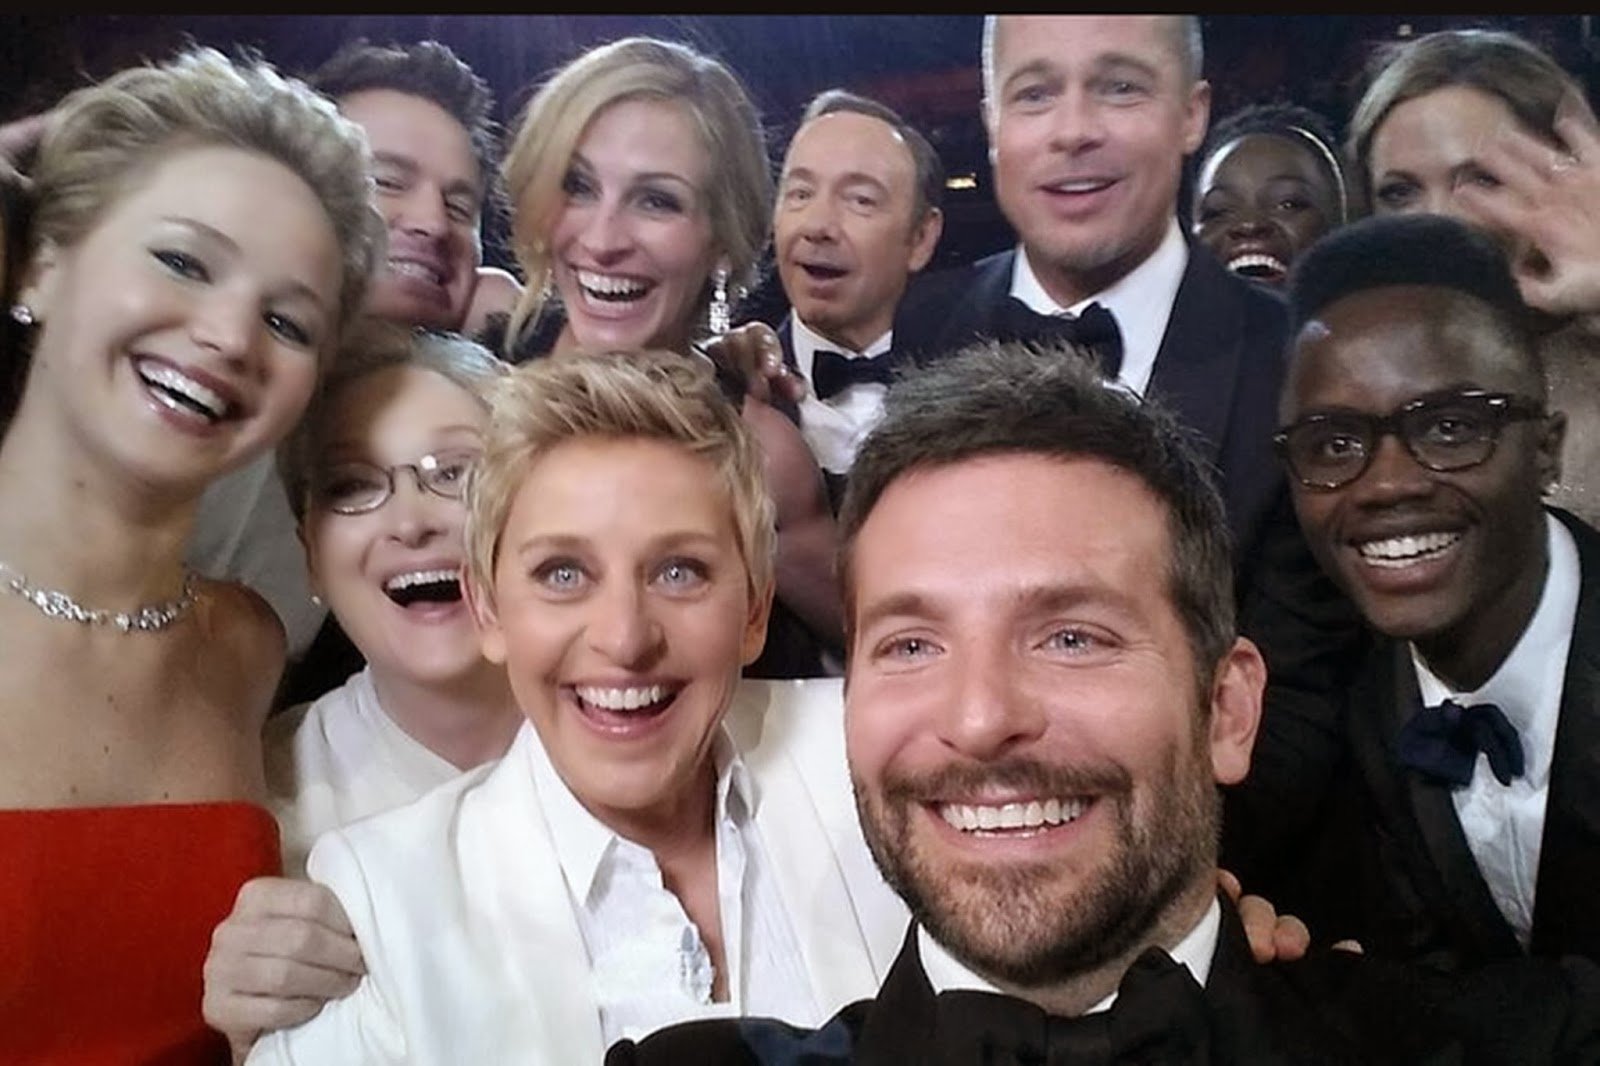 Ellen DeGeneres' Oscars 2014 'selfie' beats Obama pic for most re-tweeted